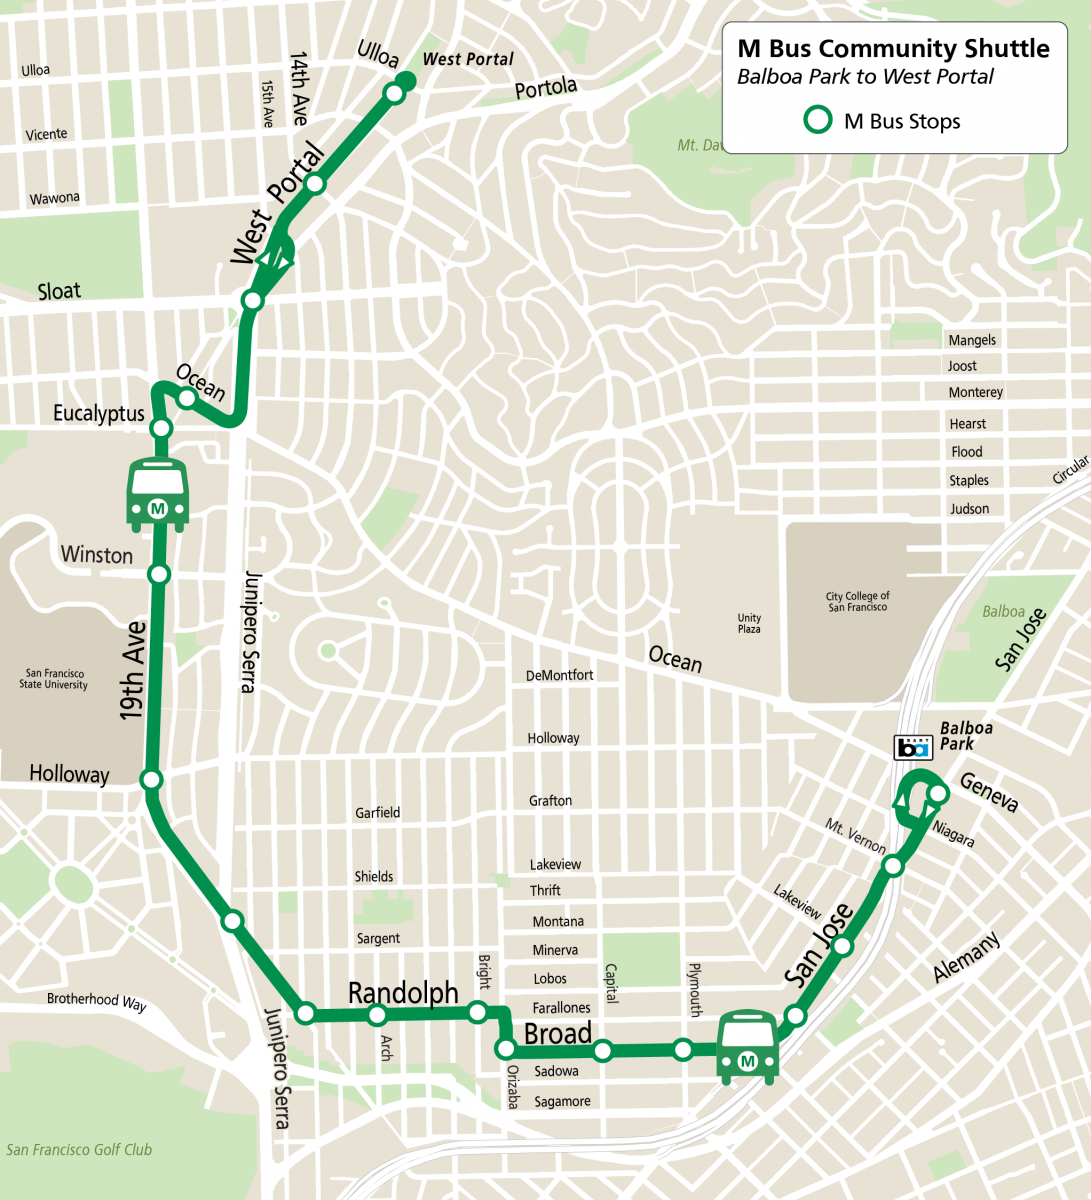 Map of M Bus service between the Balboa Park and West Portal